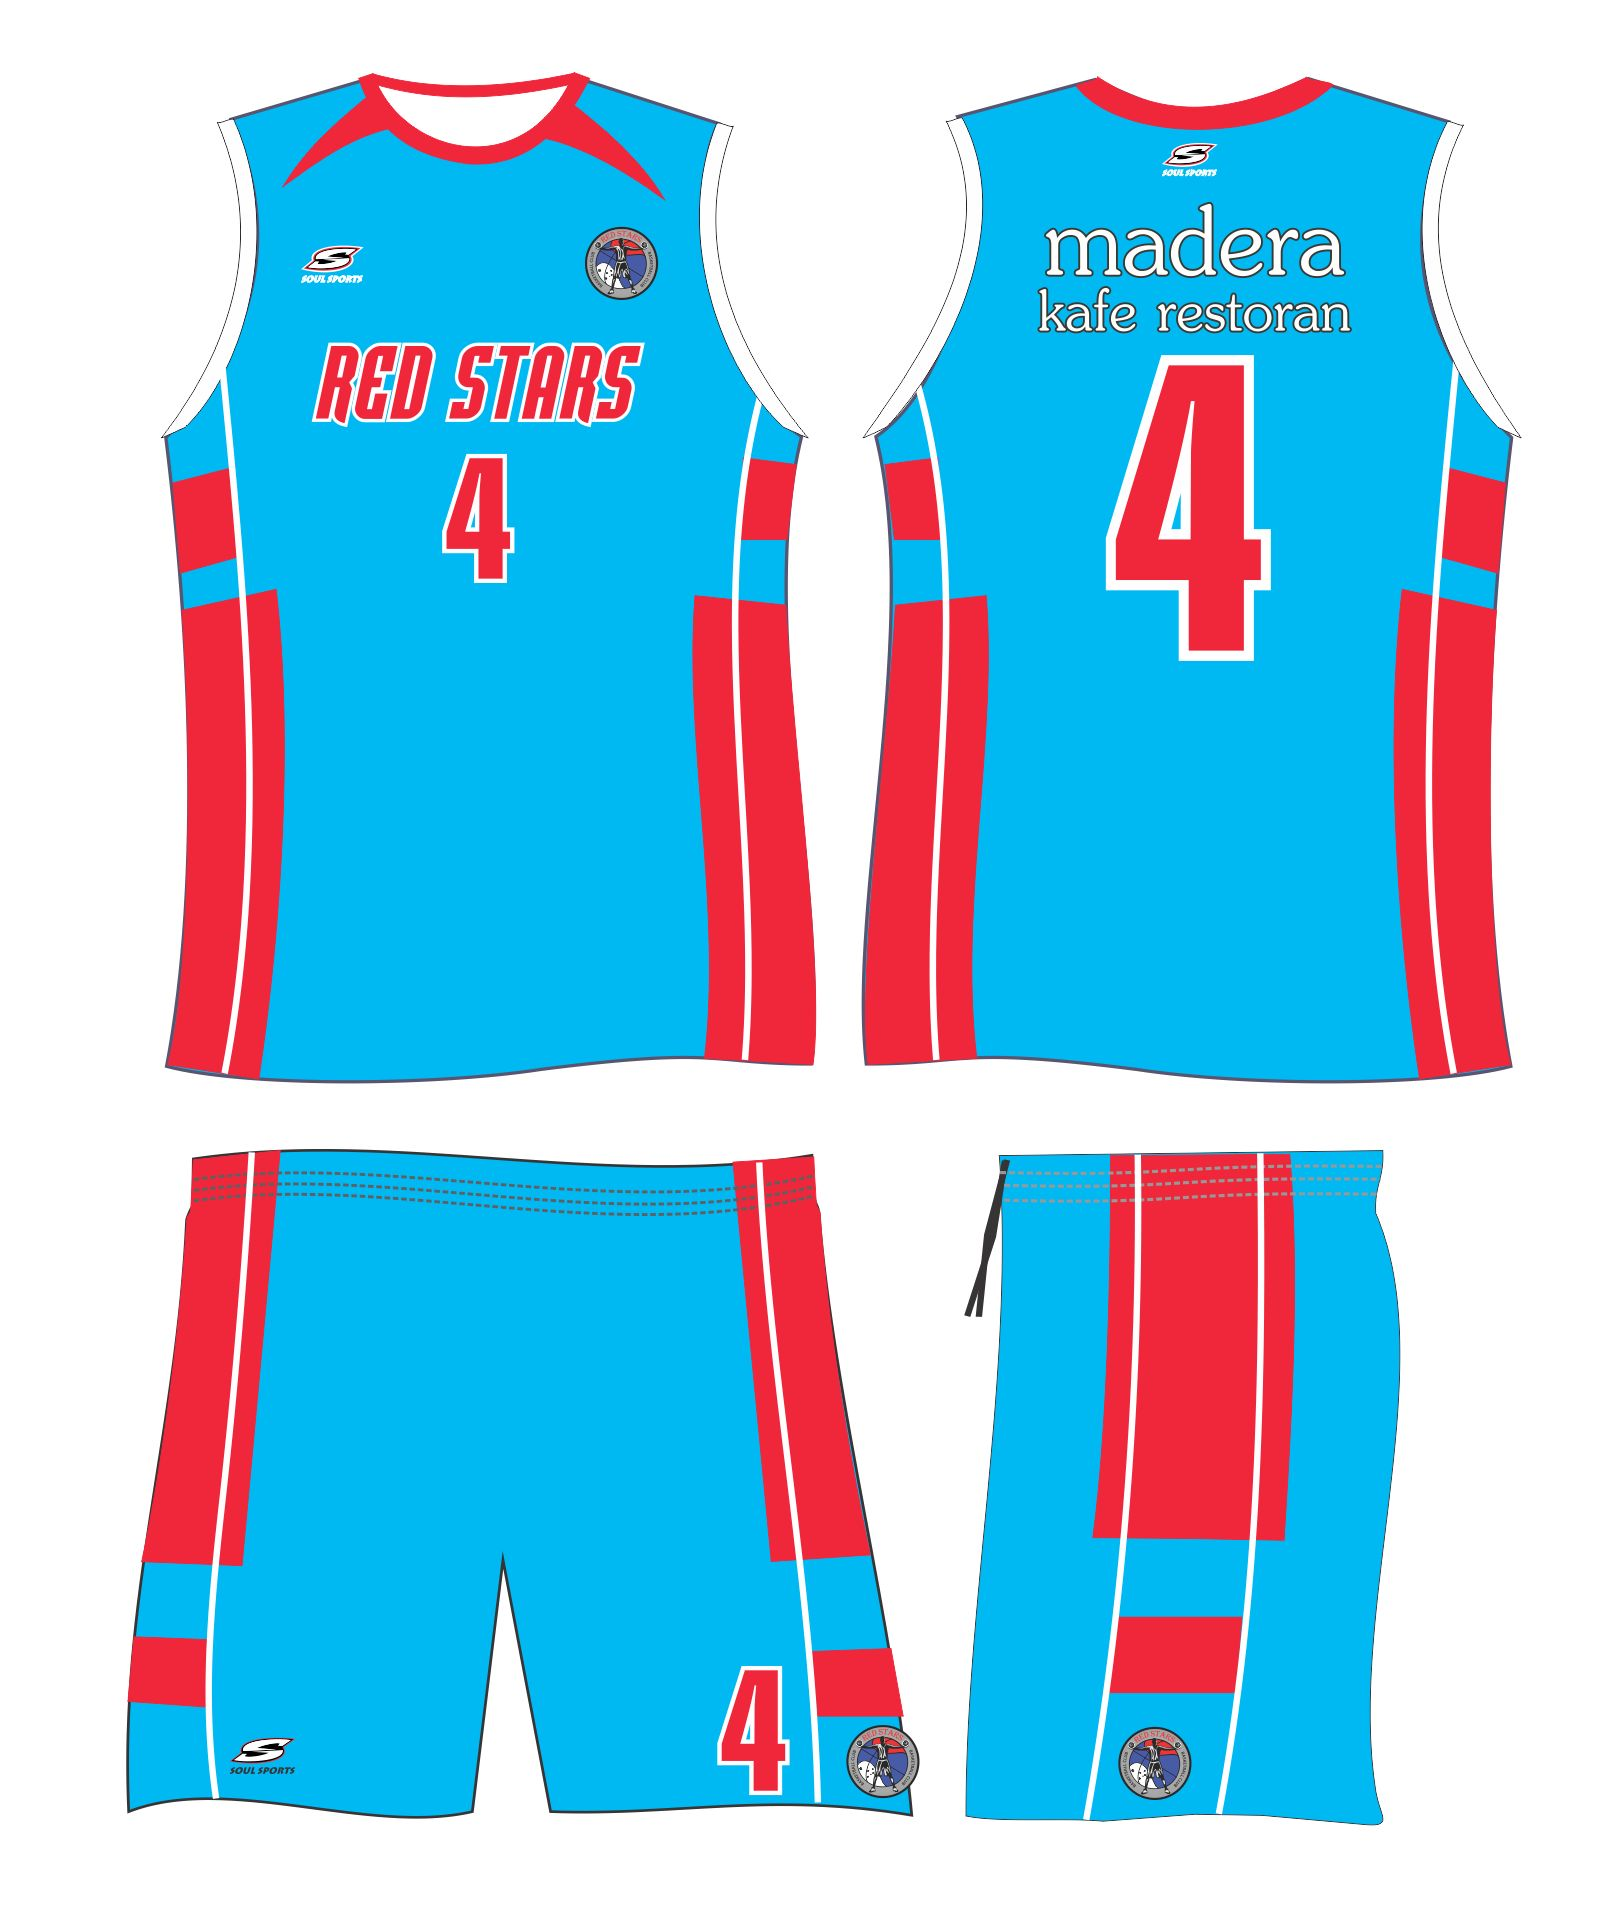 Madera_Kafe_Restoran_Red_Stars_uniforms